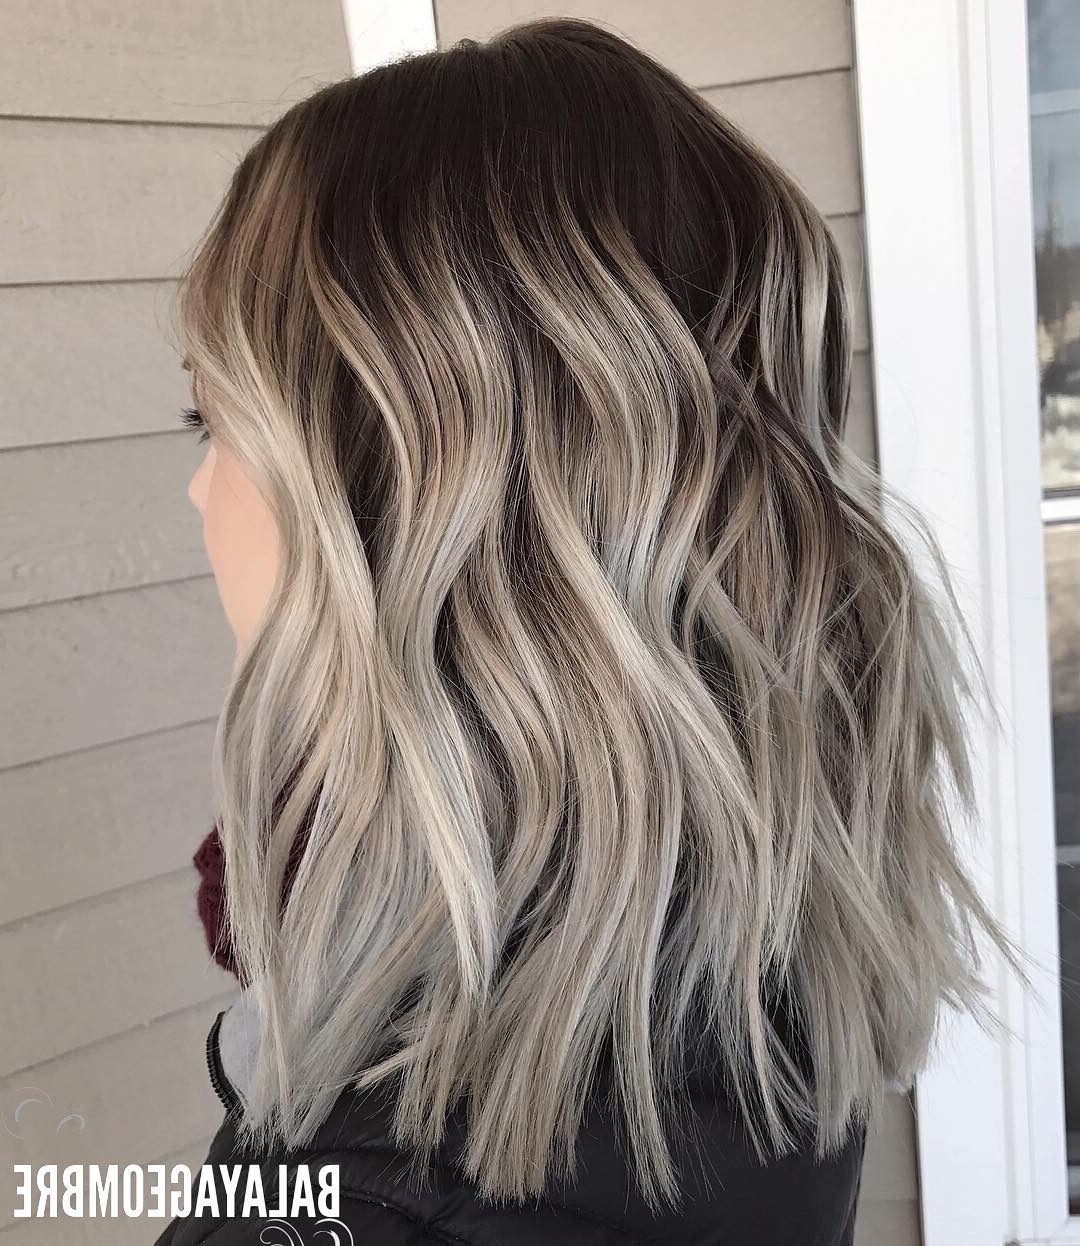 Newest Brown And Dark Blonde Layers Hairstyles Regarding 10 Best Medium Layered Hairstyles 2018 Brown & Ash Blonde Fashion Colors (View 13 of 20)